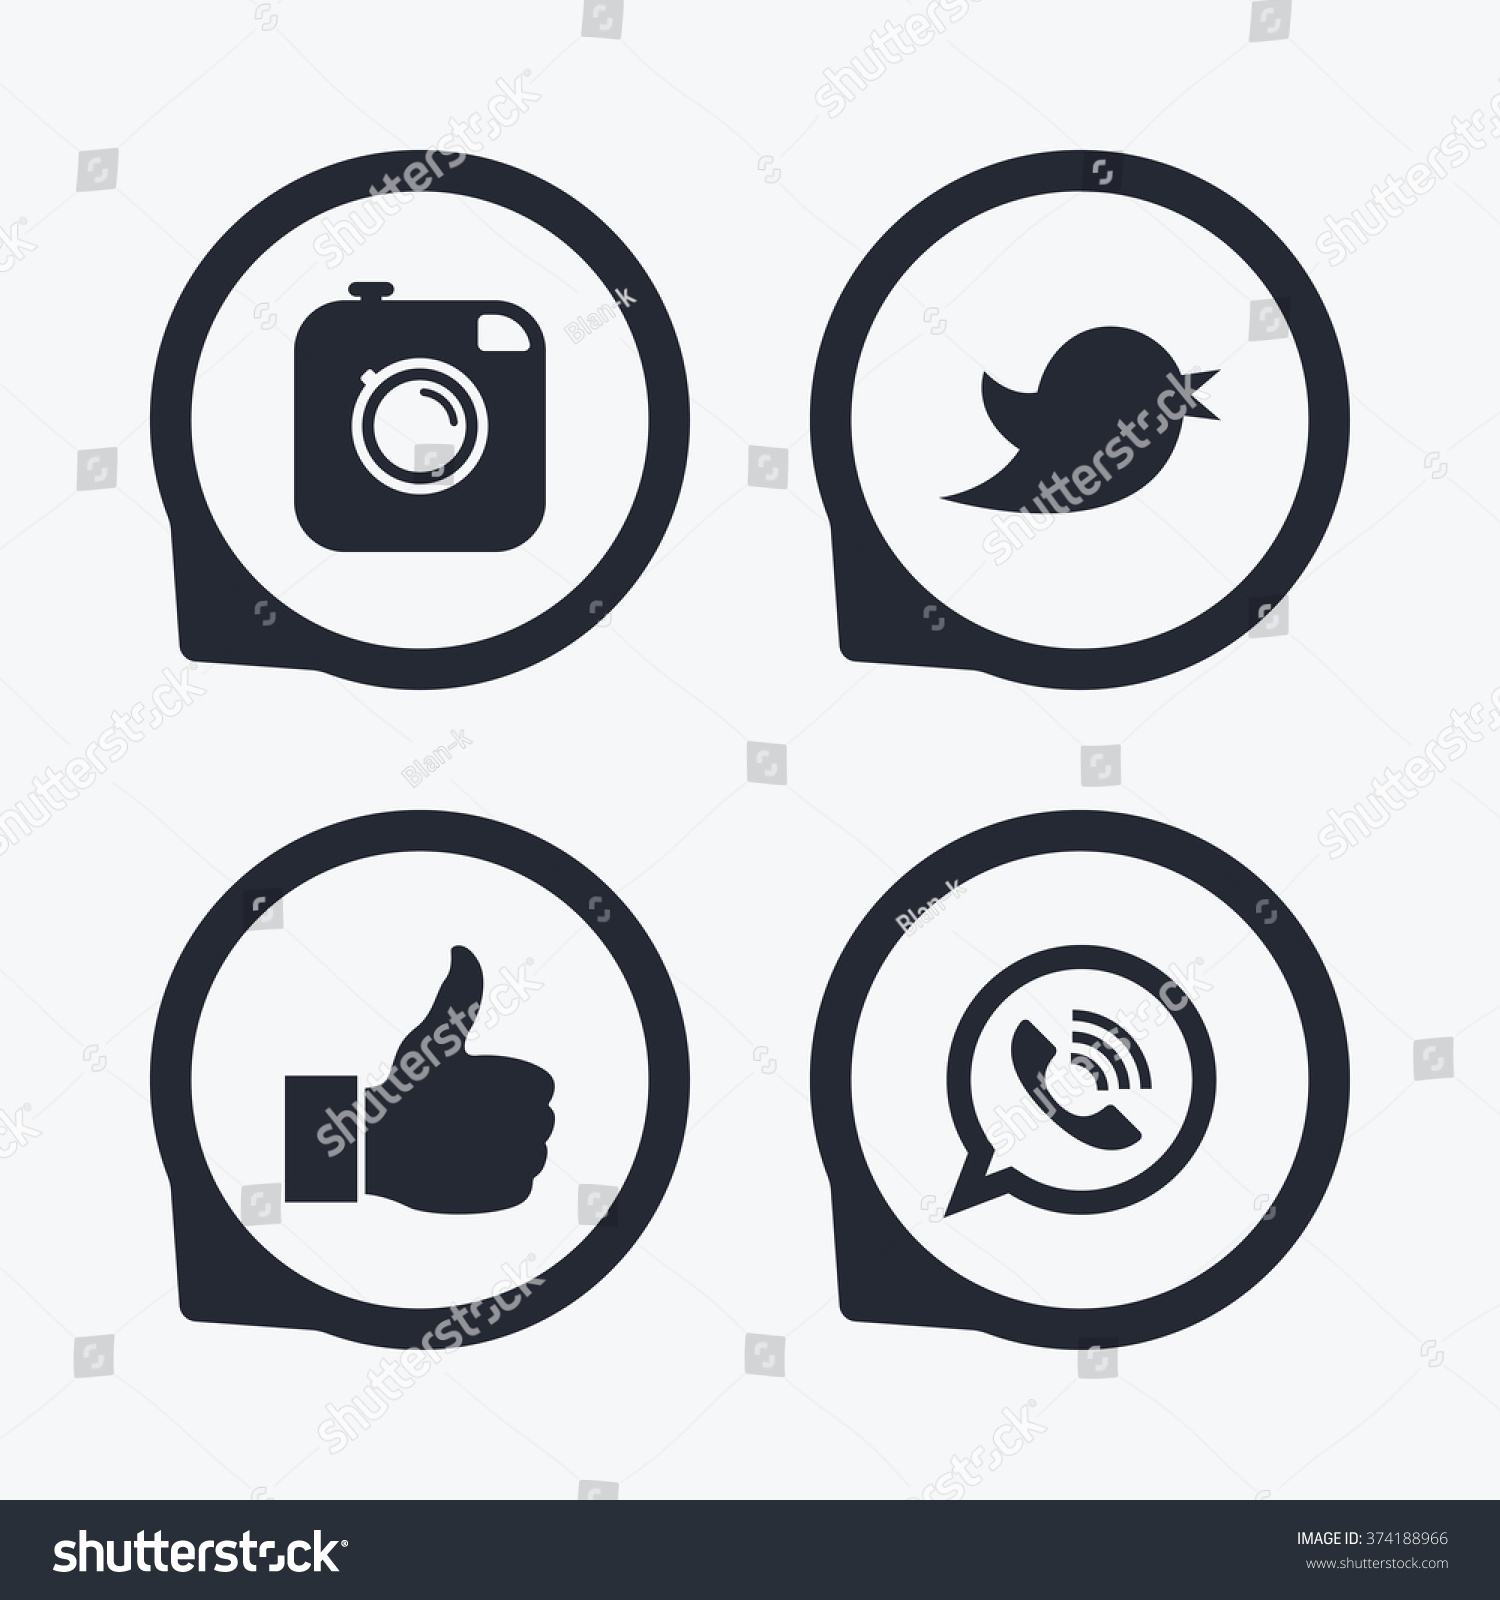 Hipster photo camera icon. Like and Call speech bubble sign. Bird symbol. Social media icons. Flat icon pointers. #374188966